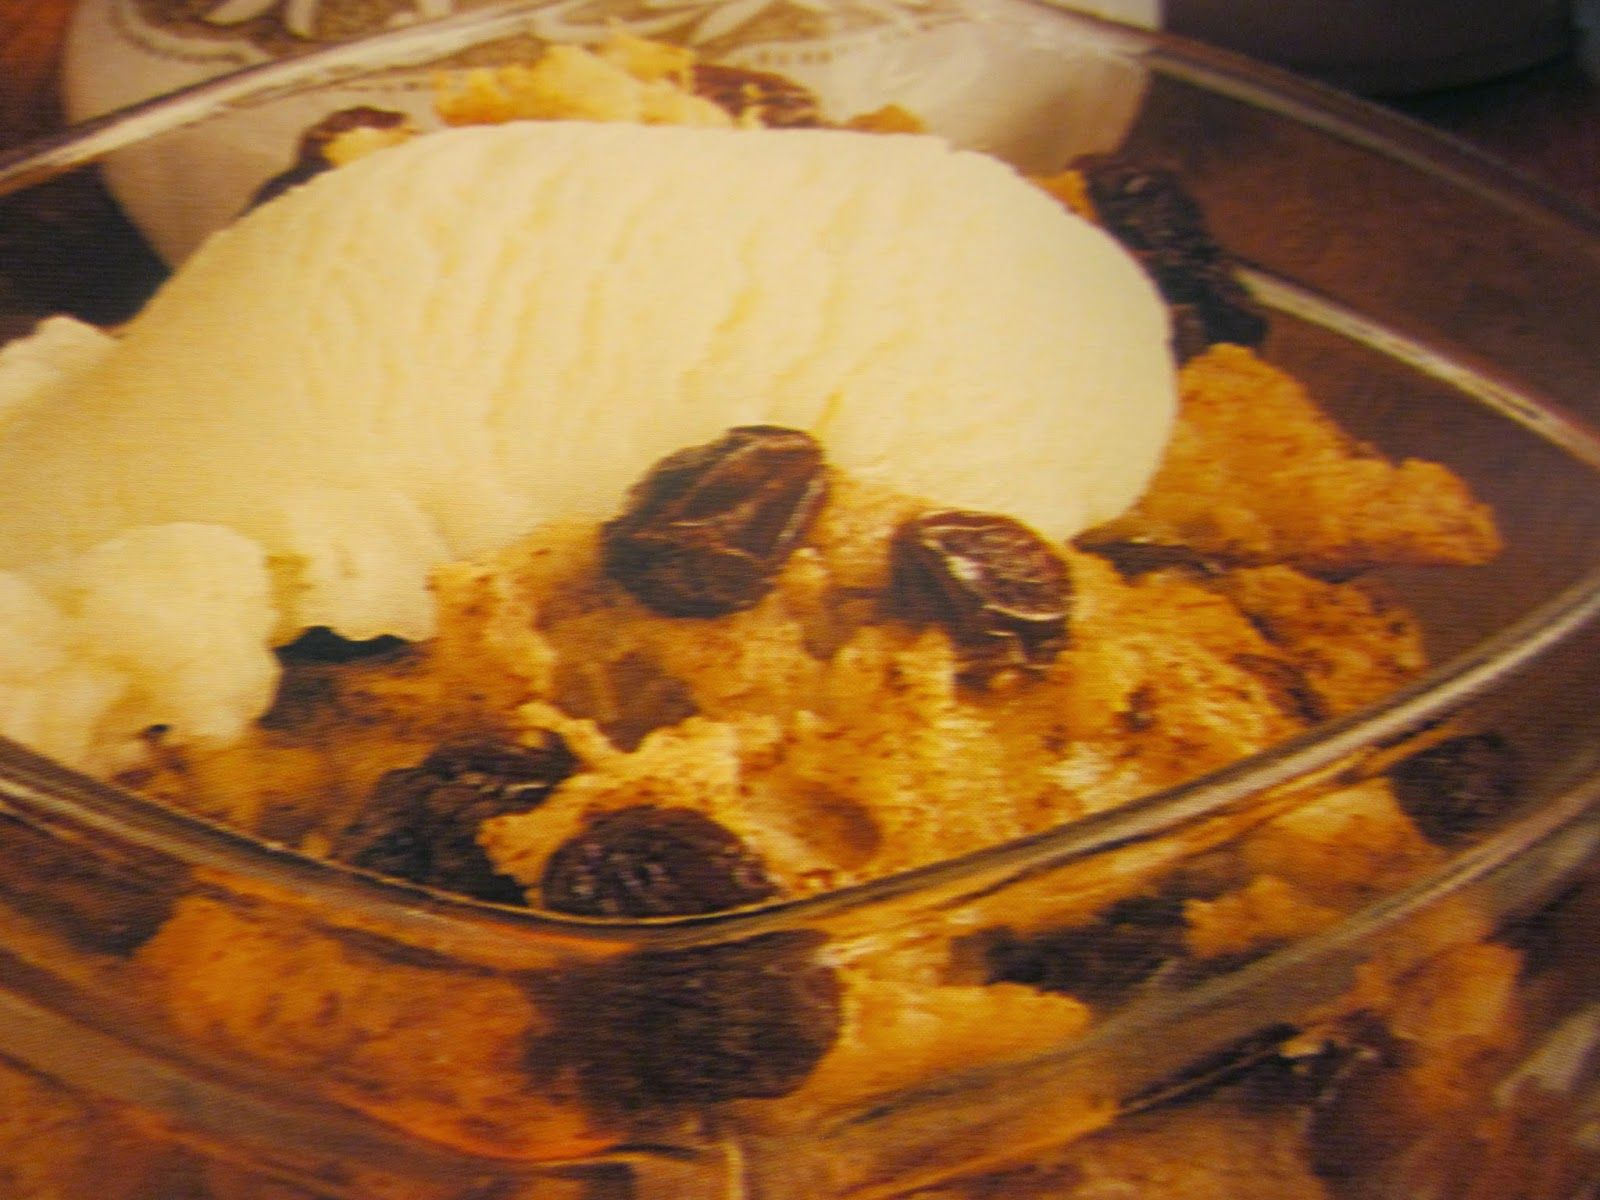 Grandma's Vintage Recipes: BREAD PUDDING FOR TWO